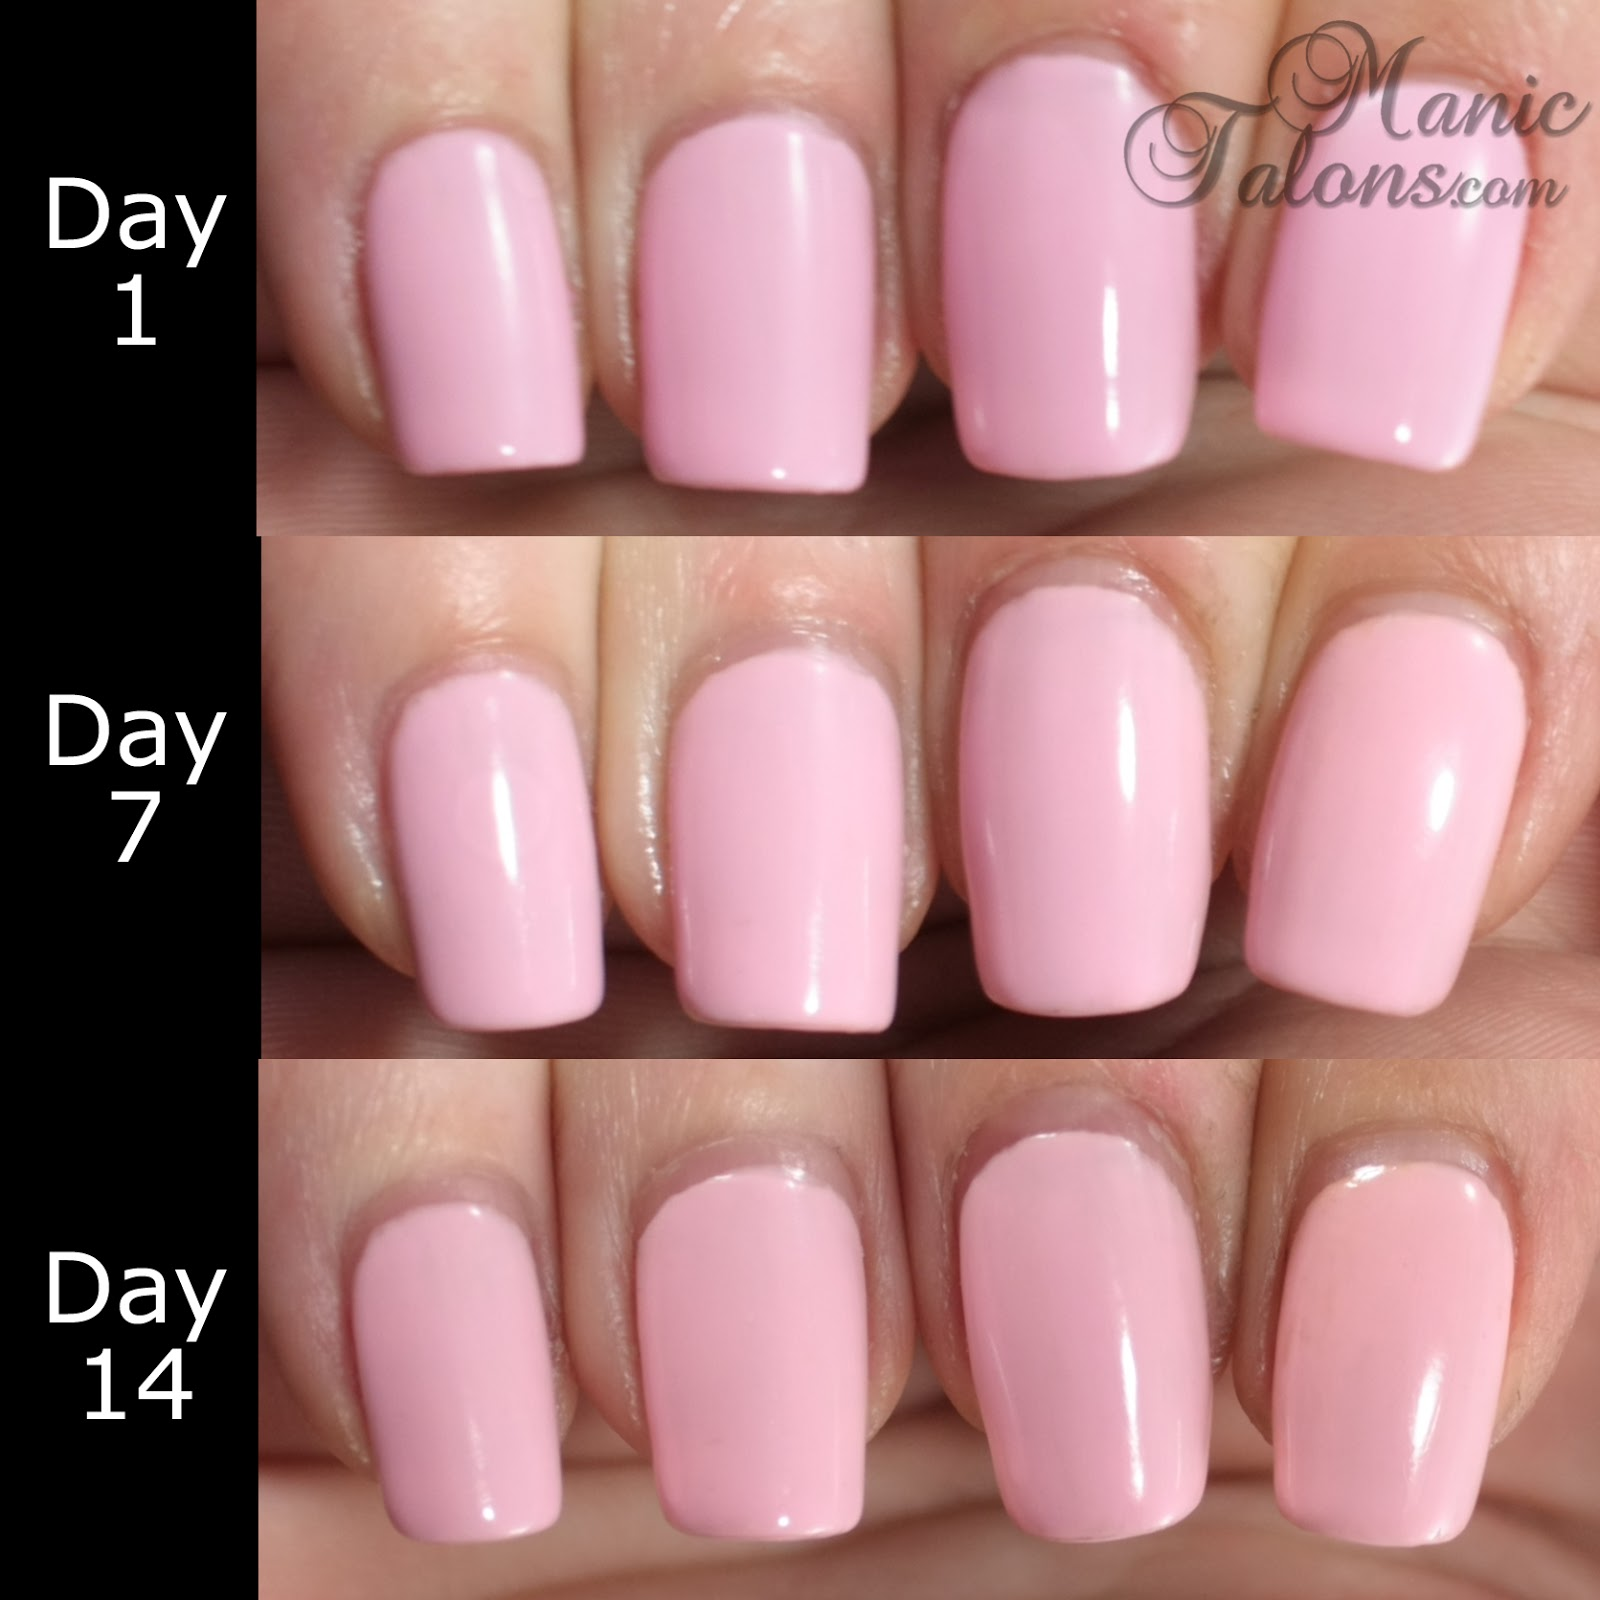 Manic Talons Nail Design: Daisy DUO Soak Off Gel Polish Review: Part ...